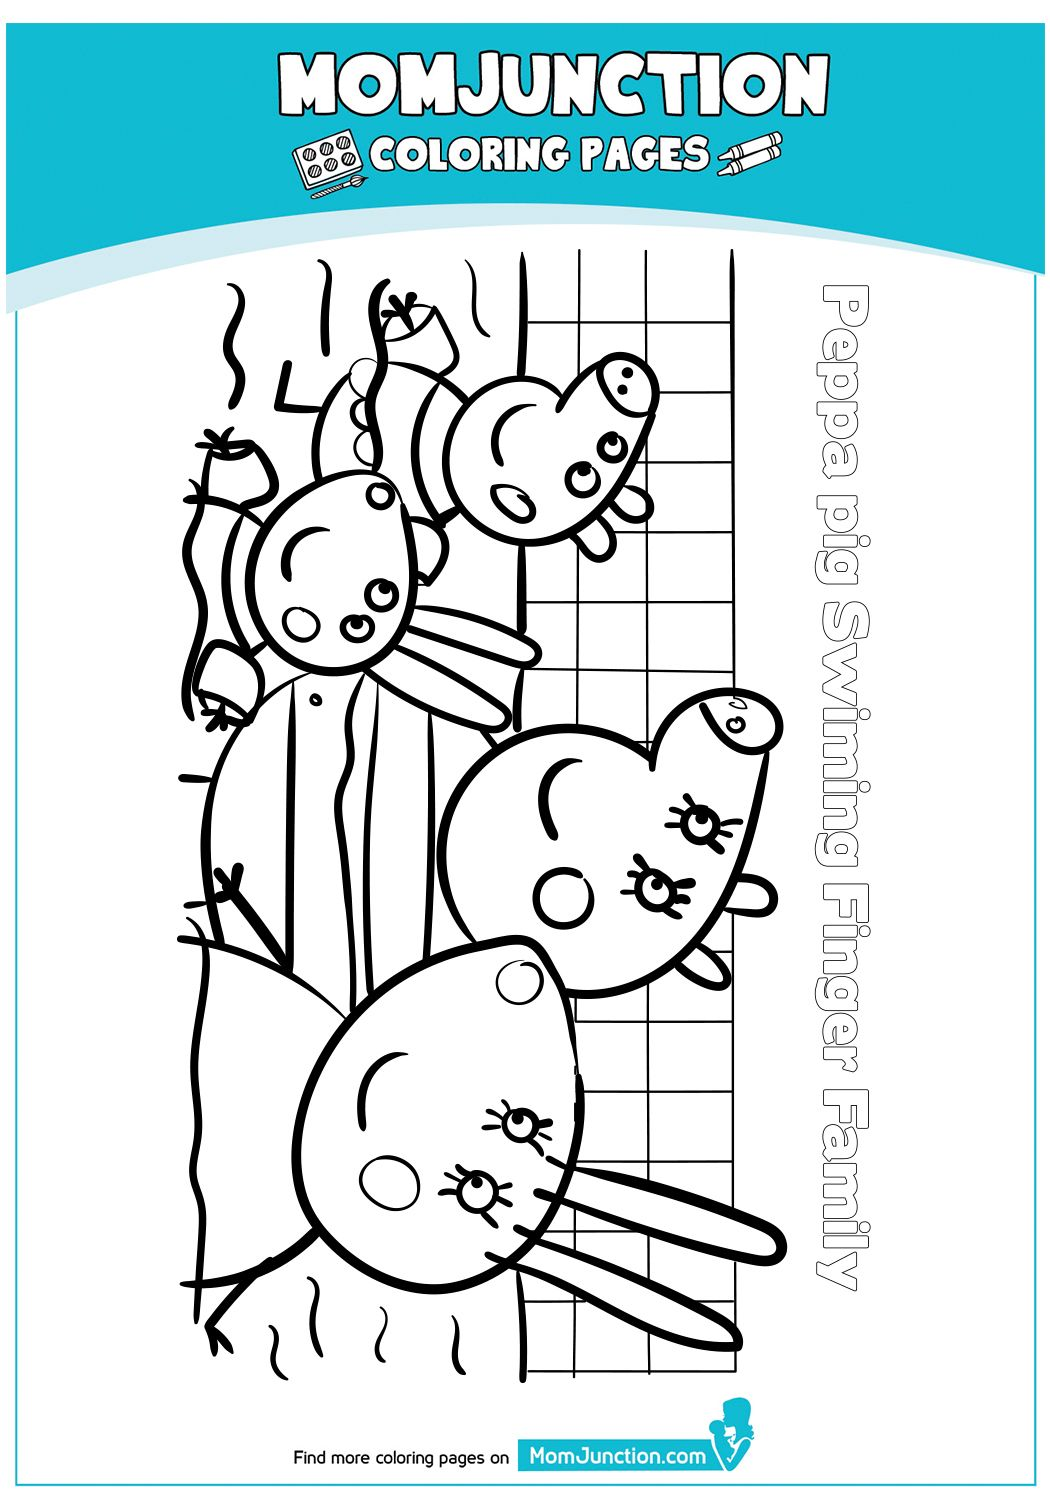 The Alexander Coloring Page In 2020 Peppa Pig Coloring Pages Peppa Pig Colouring Coloring Pages